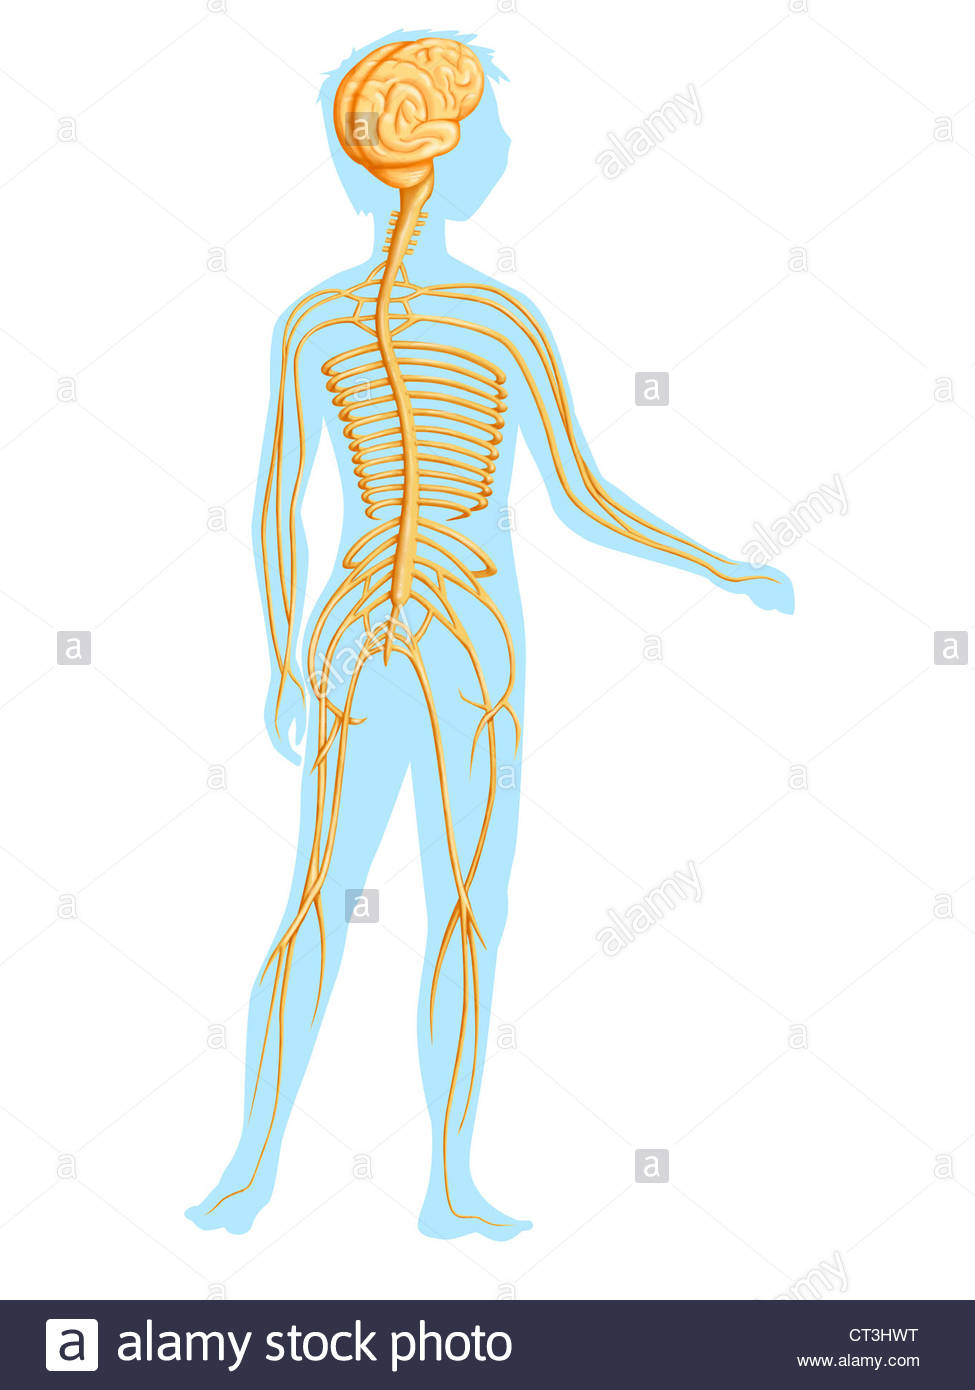 975x1390 Nervous System, Drawing Stock Photo 49252388